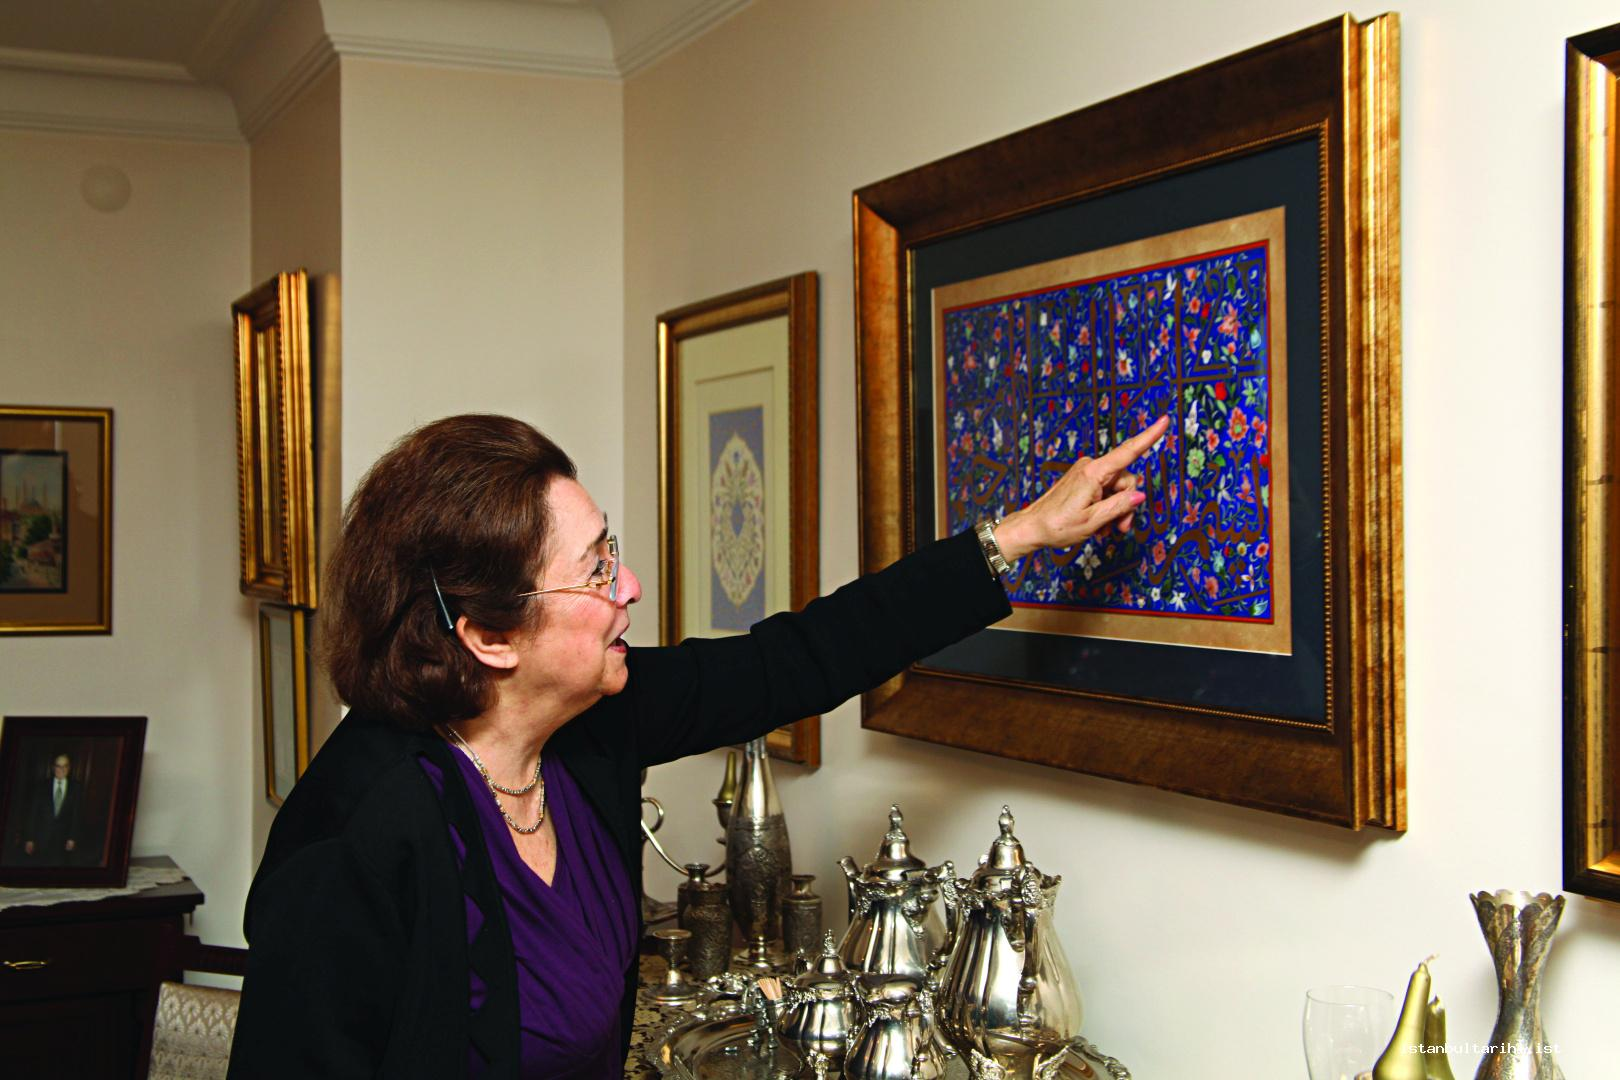 5- Gülbün Mesara is in her house in Çiftehavuzlar. She shows one of the works of her father in the room that she reserved her father.